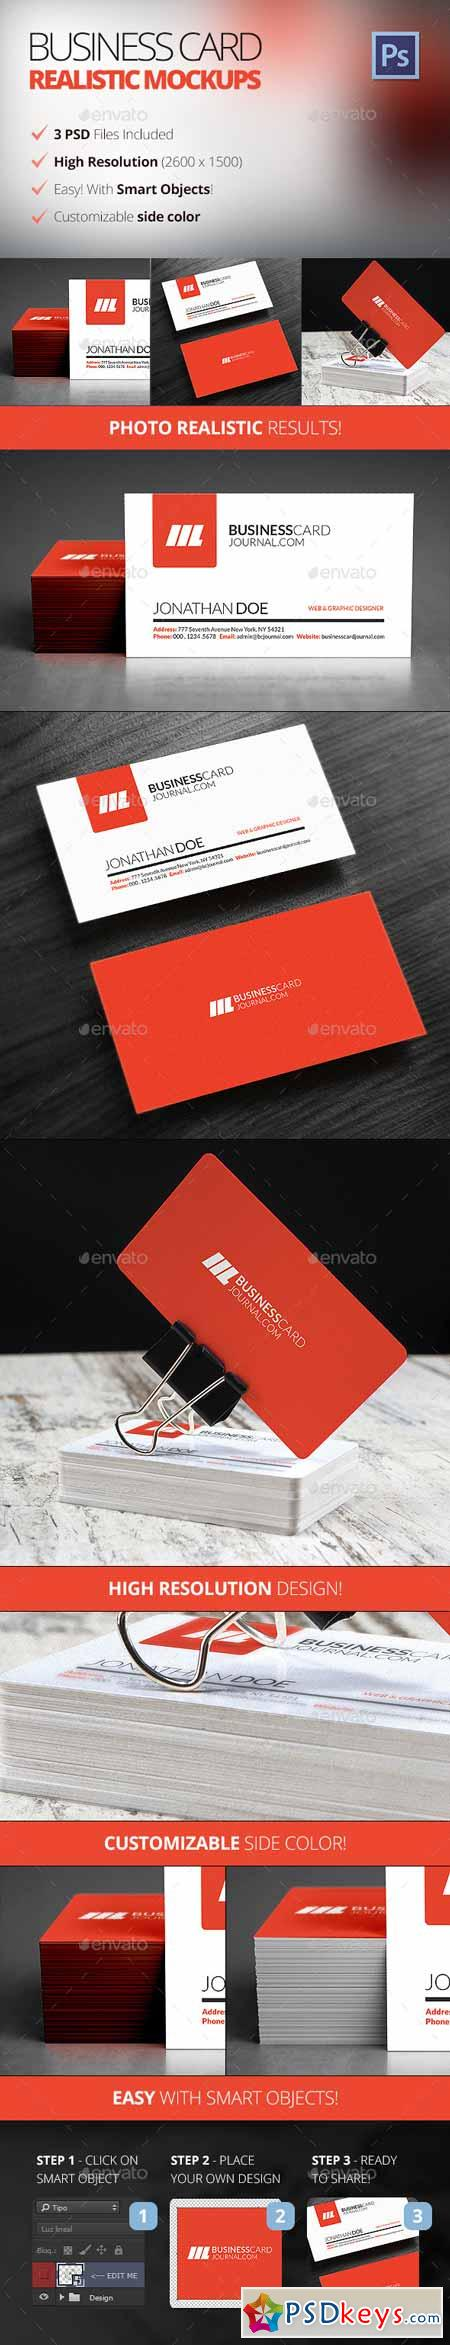 Photo Realistic Business Card Mockups 12045202